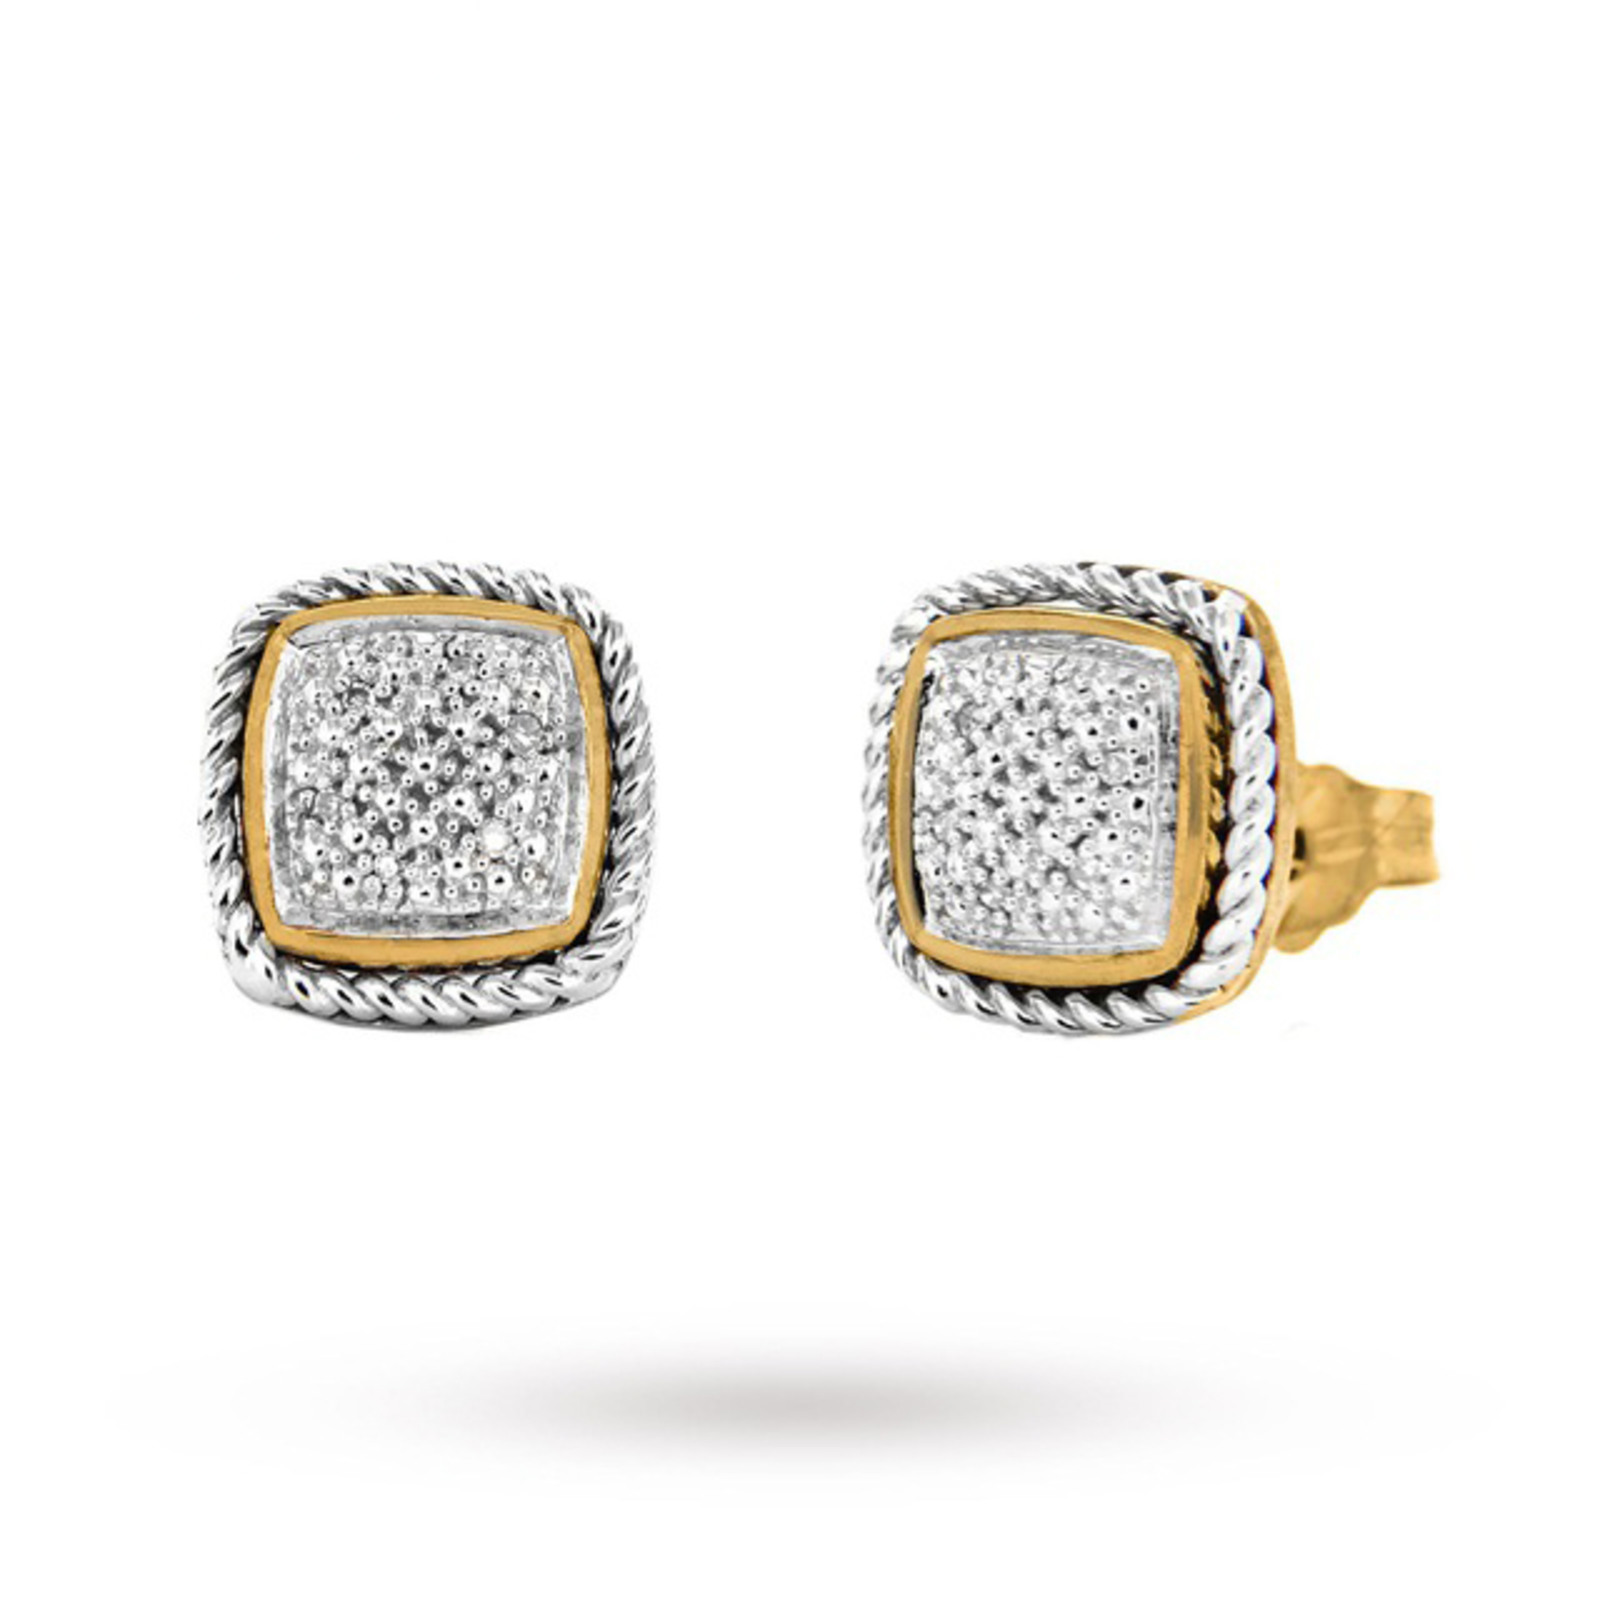 9 Carat 2 Colour Gold Pave Set Square Diamond Stud Earrings